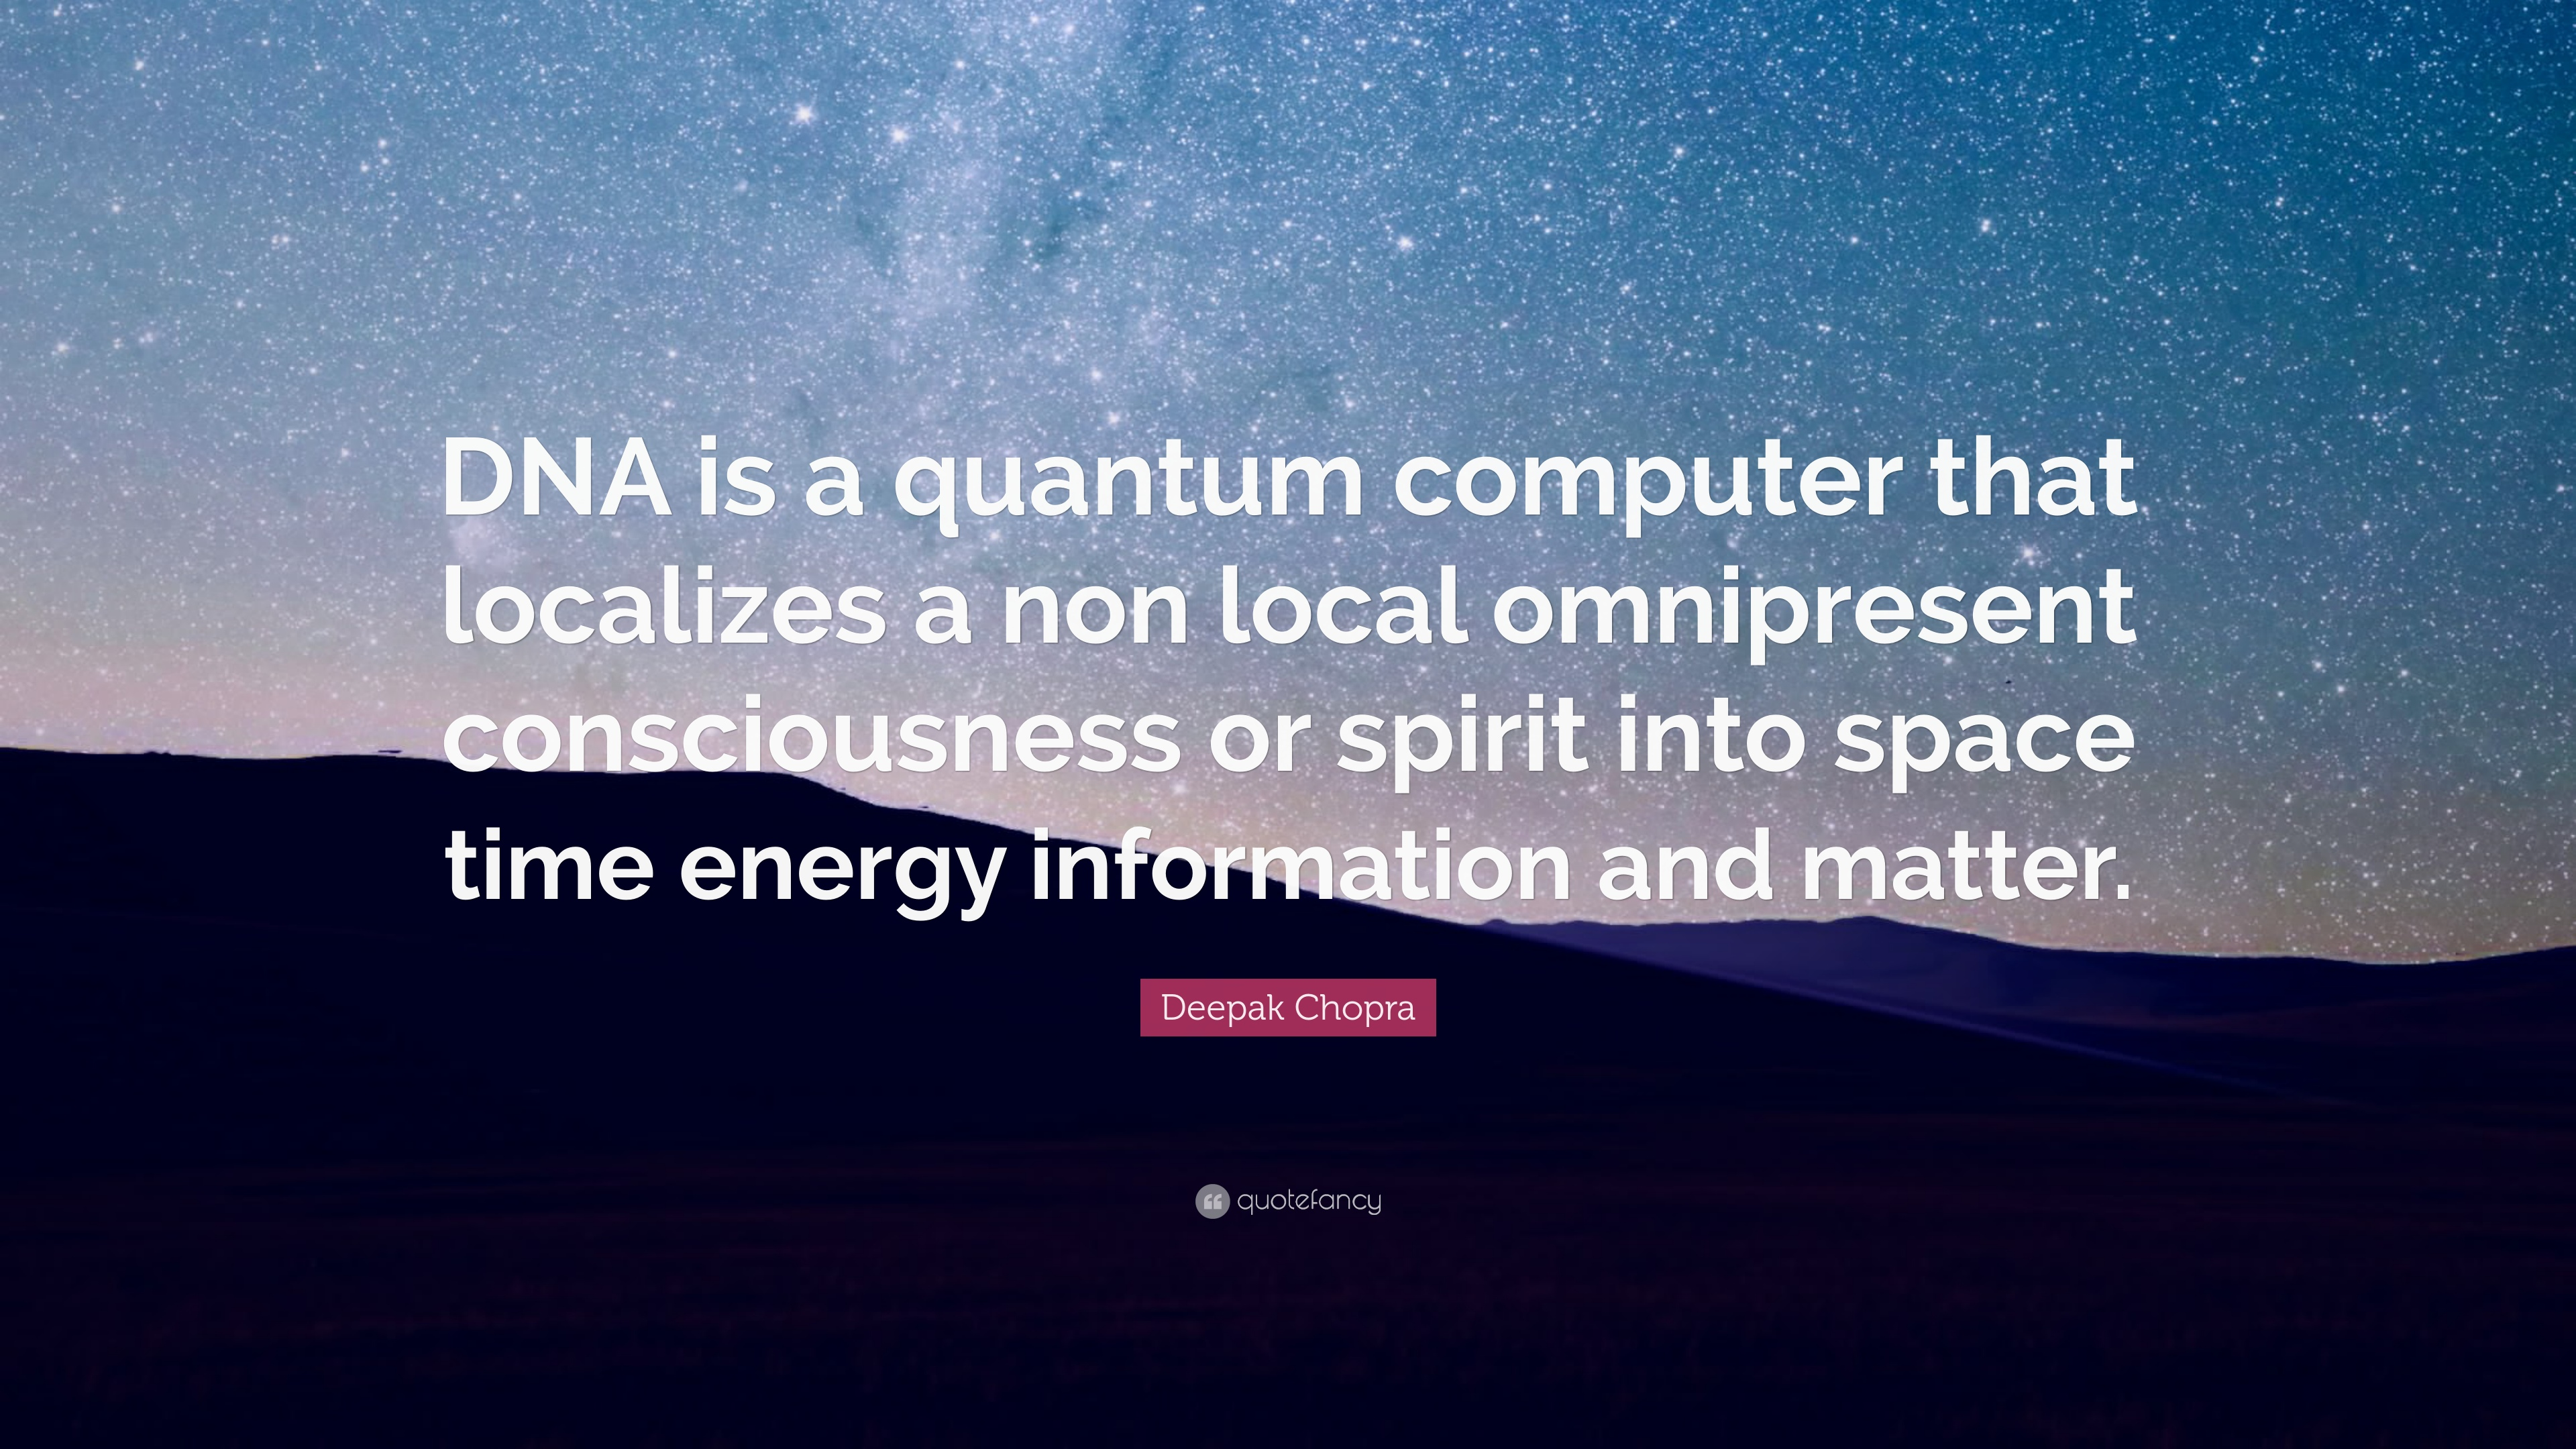 Dna Quotes And Sayings: Deepak Chopra Quotes (100 Wallpapers)